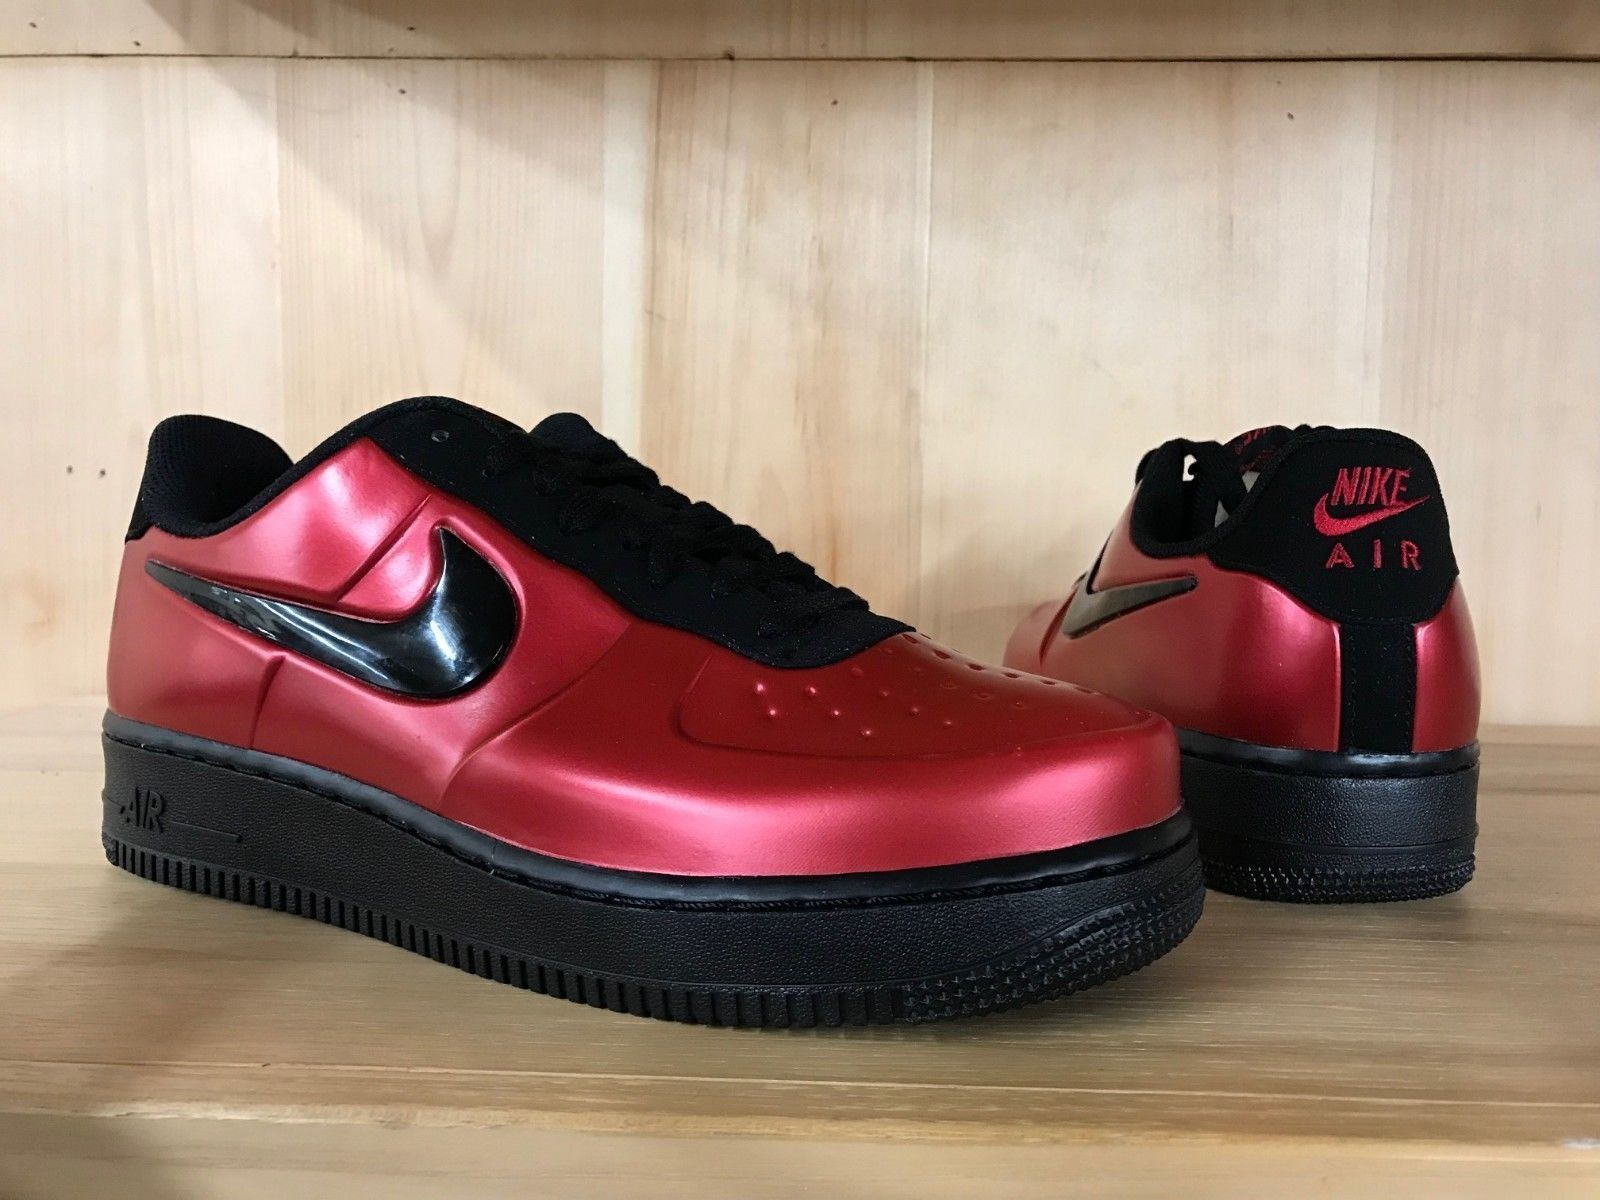 official photos 84368 2f798 france nike air force one 1 foamposite foamposite 1 pro cup sole metallic  gym rød aj3664